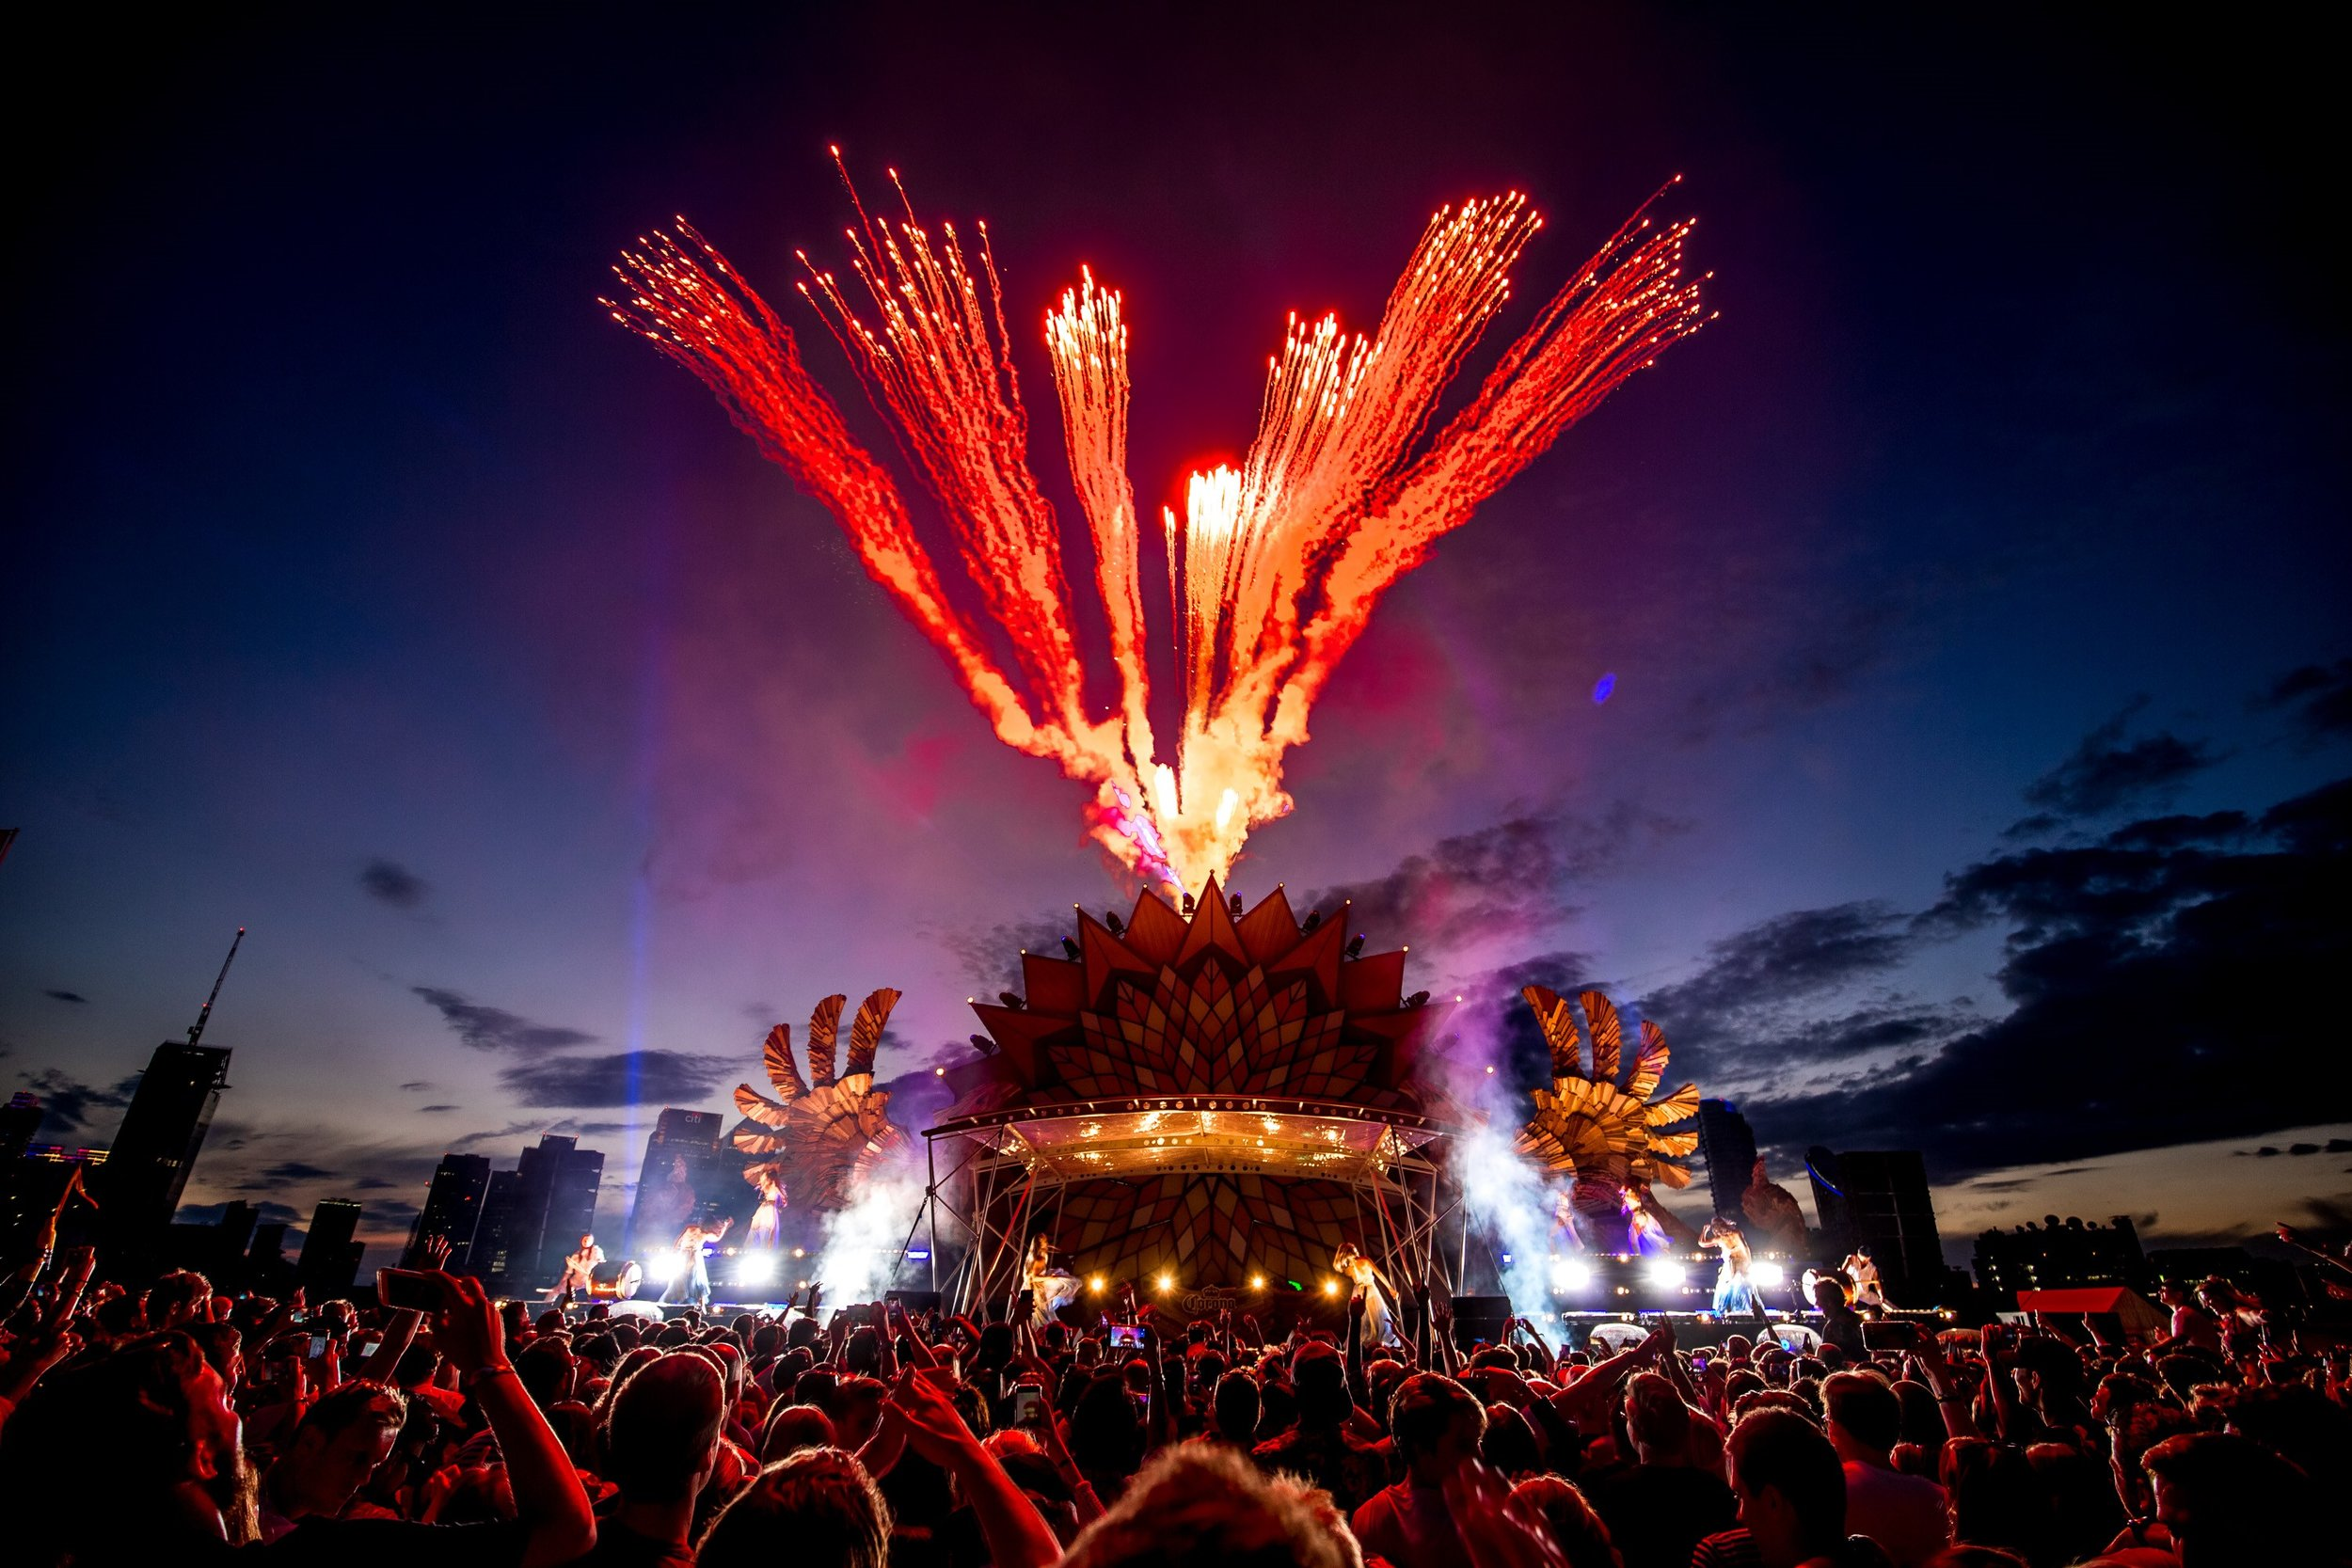 East London Dance Event - Close proximity pyrotechnics and flame effects for a dance event beside the Millennium Dome